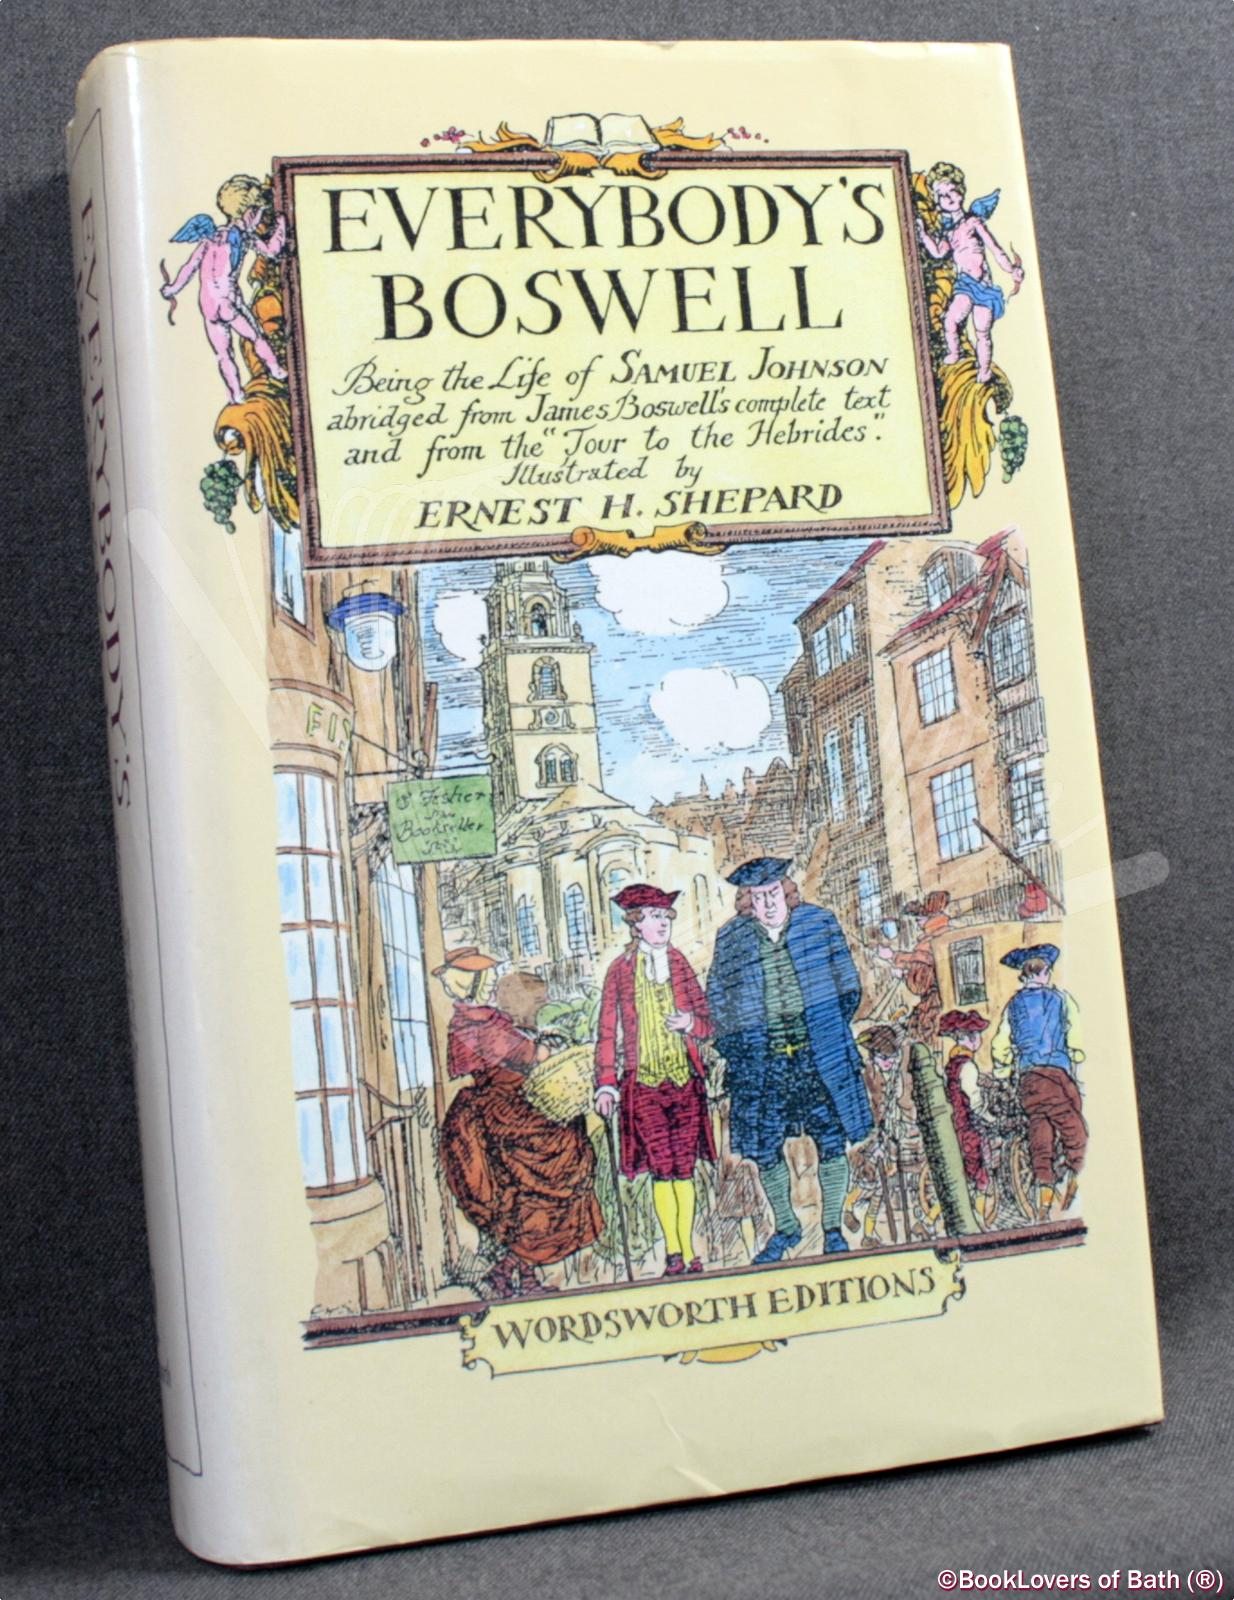 Everybody's Boswell: Being the Life of Samuel Johnson Abridged from James Boswell's Complete Text and from the Tour to the Hebrides - James Boswell